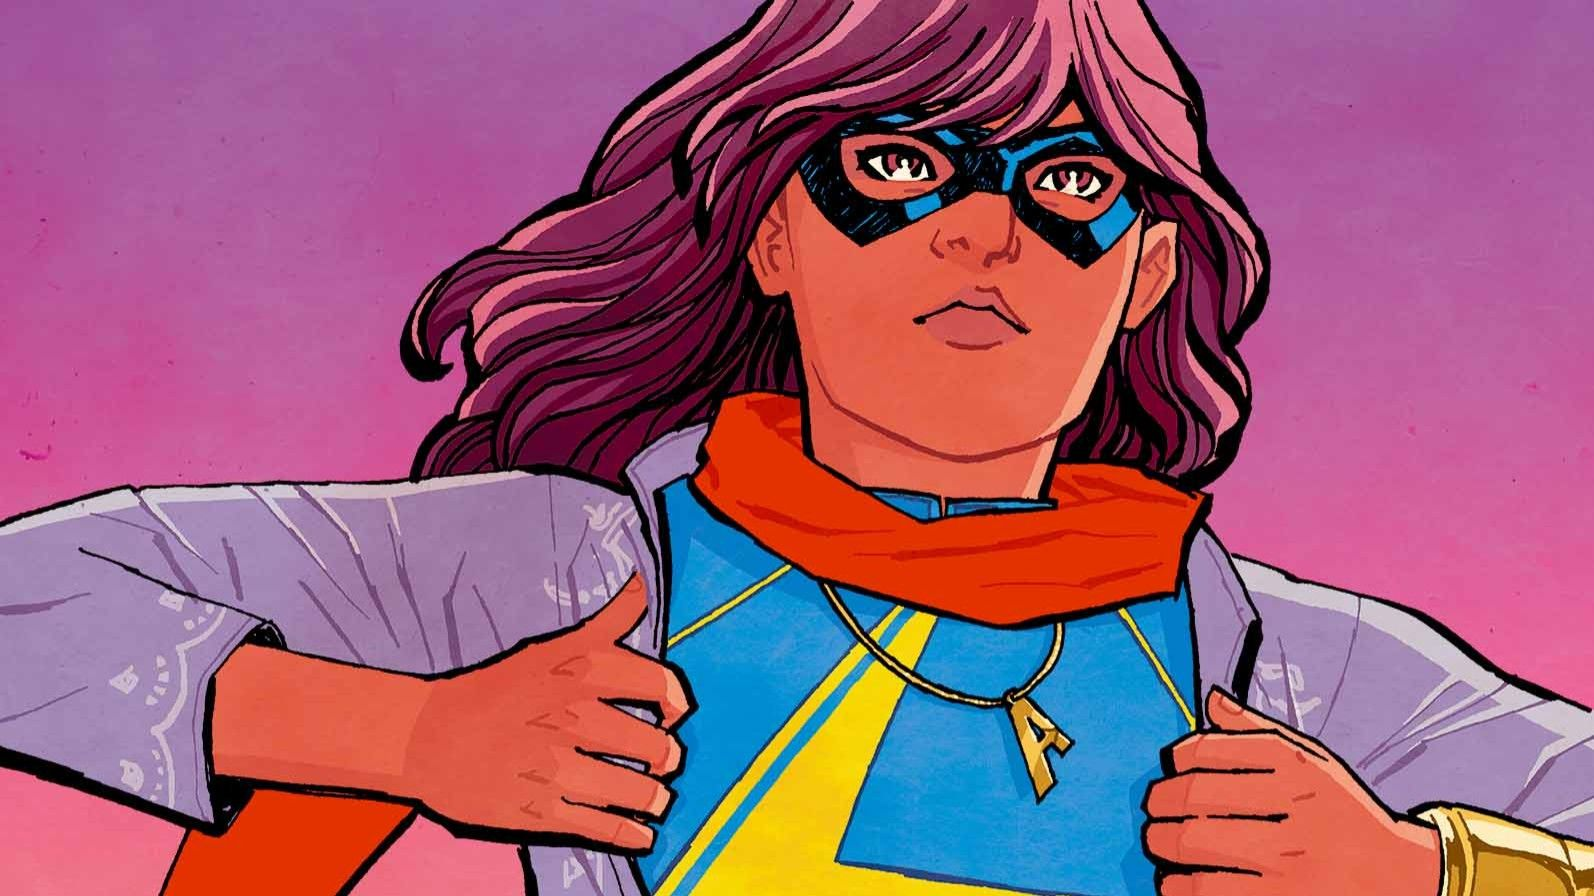 Ms Marvel series with Muslim hero Kamala Khan is coming, and will tie into the MCU